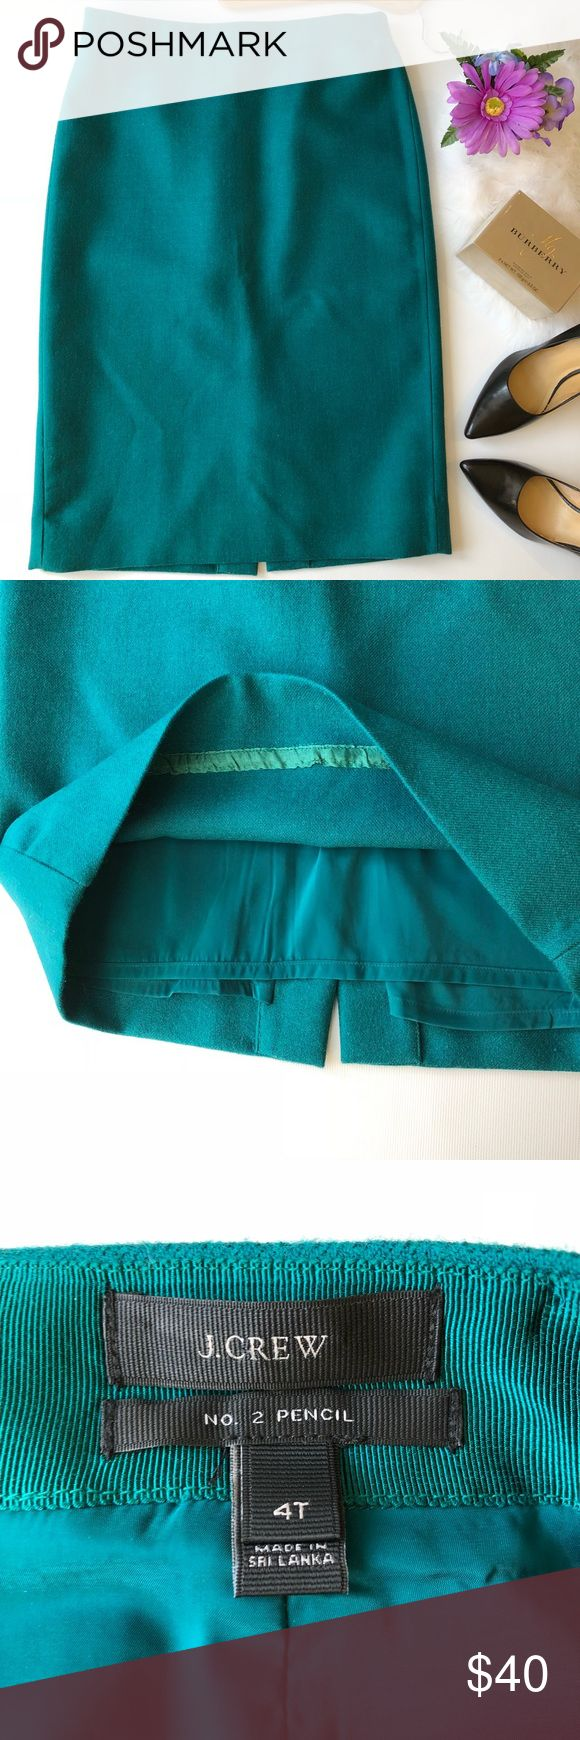 """J. CREW No. 2 Pencil Skirt Emerald Green sz 4T J. Crew No 2 Pencil Skirt In Double Serge Wool. Emerald green. Size 4T. In like new conditions. Please see pictures for fabric information. Back zipper. Fully lined. ALL MEASUREMENTS ARE APPROXIMATELY AND LAYING FLAT: 🔸LENGTH: 25"""" 🔸WAIST: 15"""" 🔸HIPS: 18"""" FEEL FREE TO ASK QUESTIONS  I DO NOT TRADE. J. Crew Skirts Pencil"""